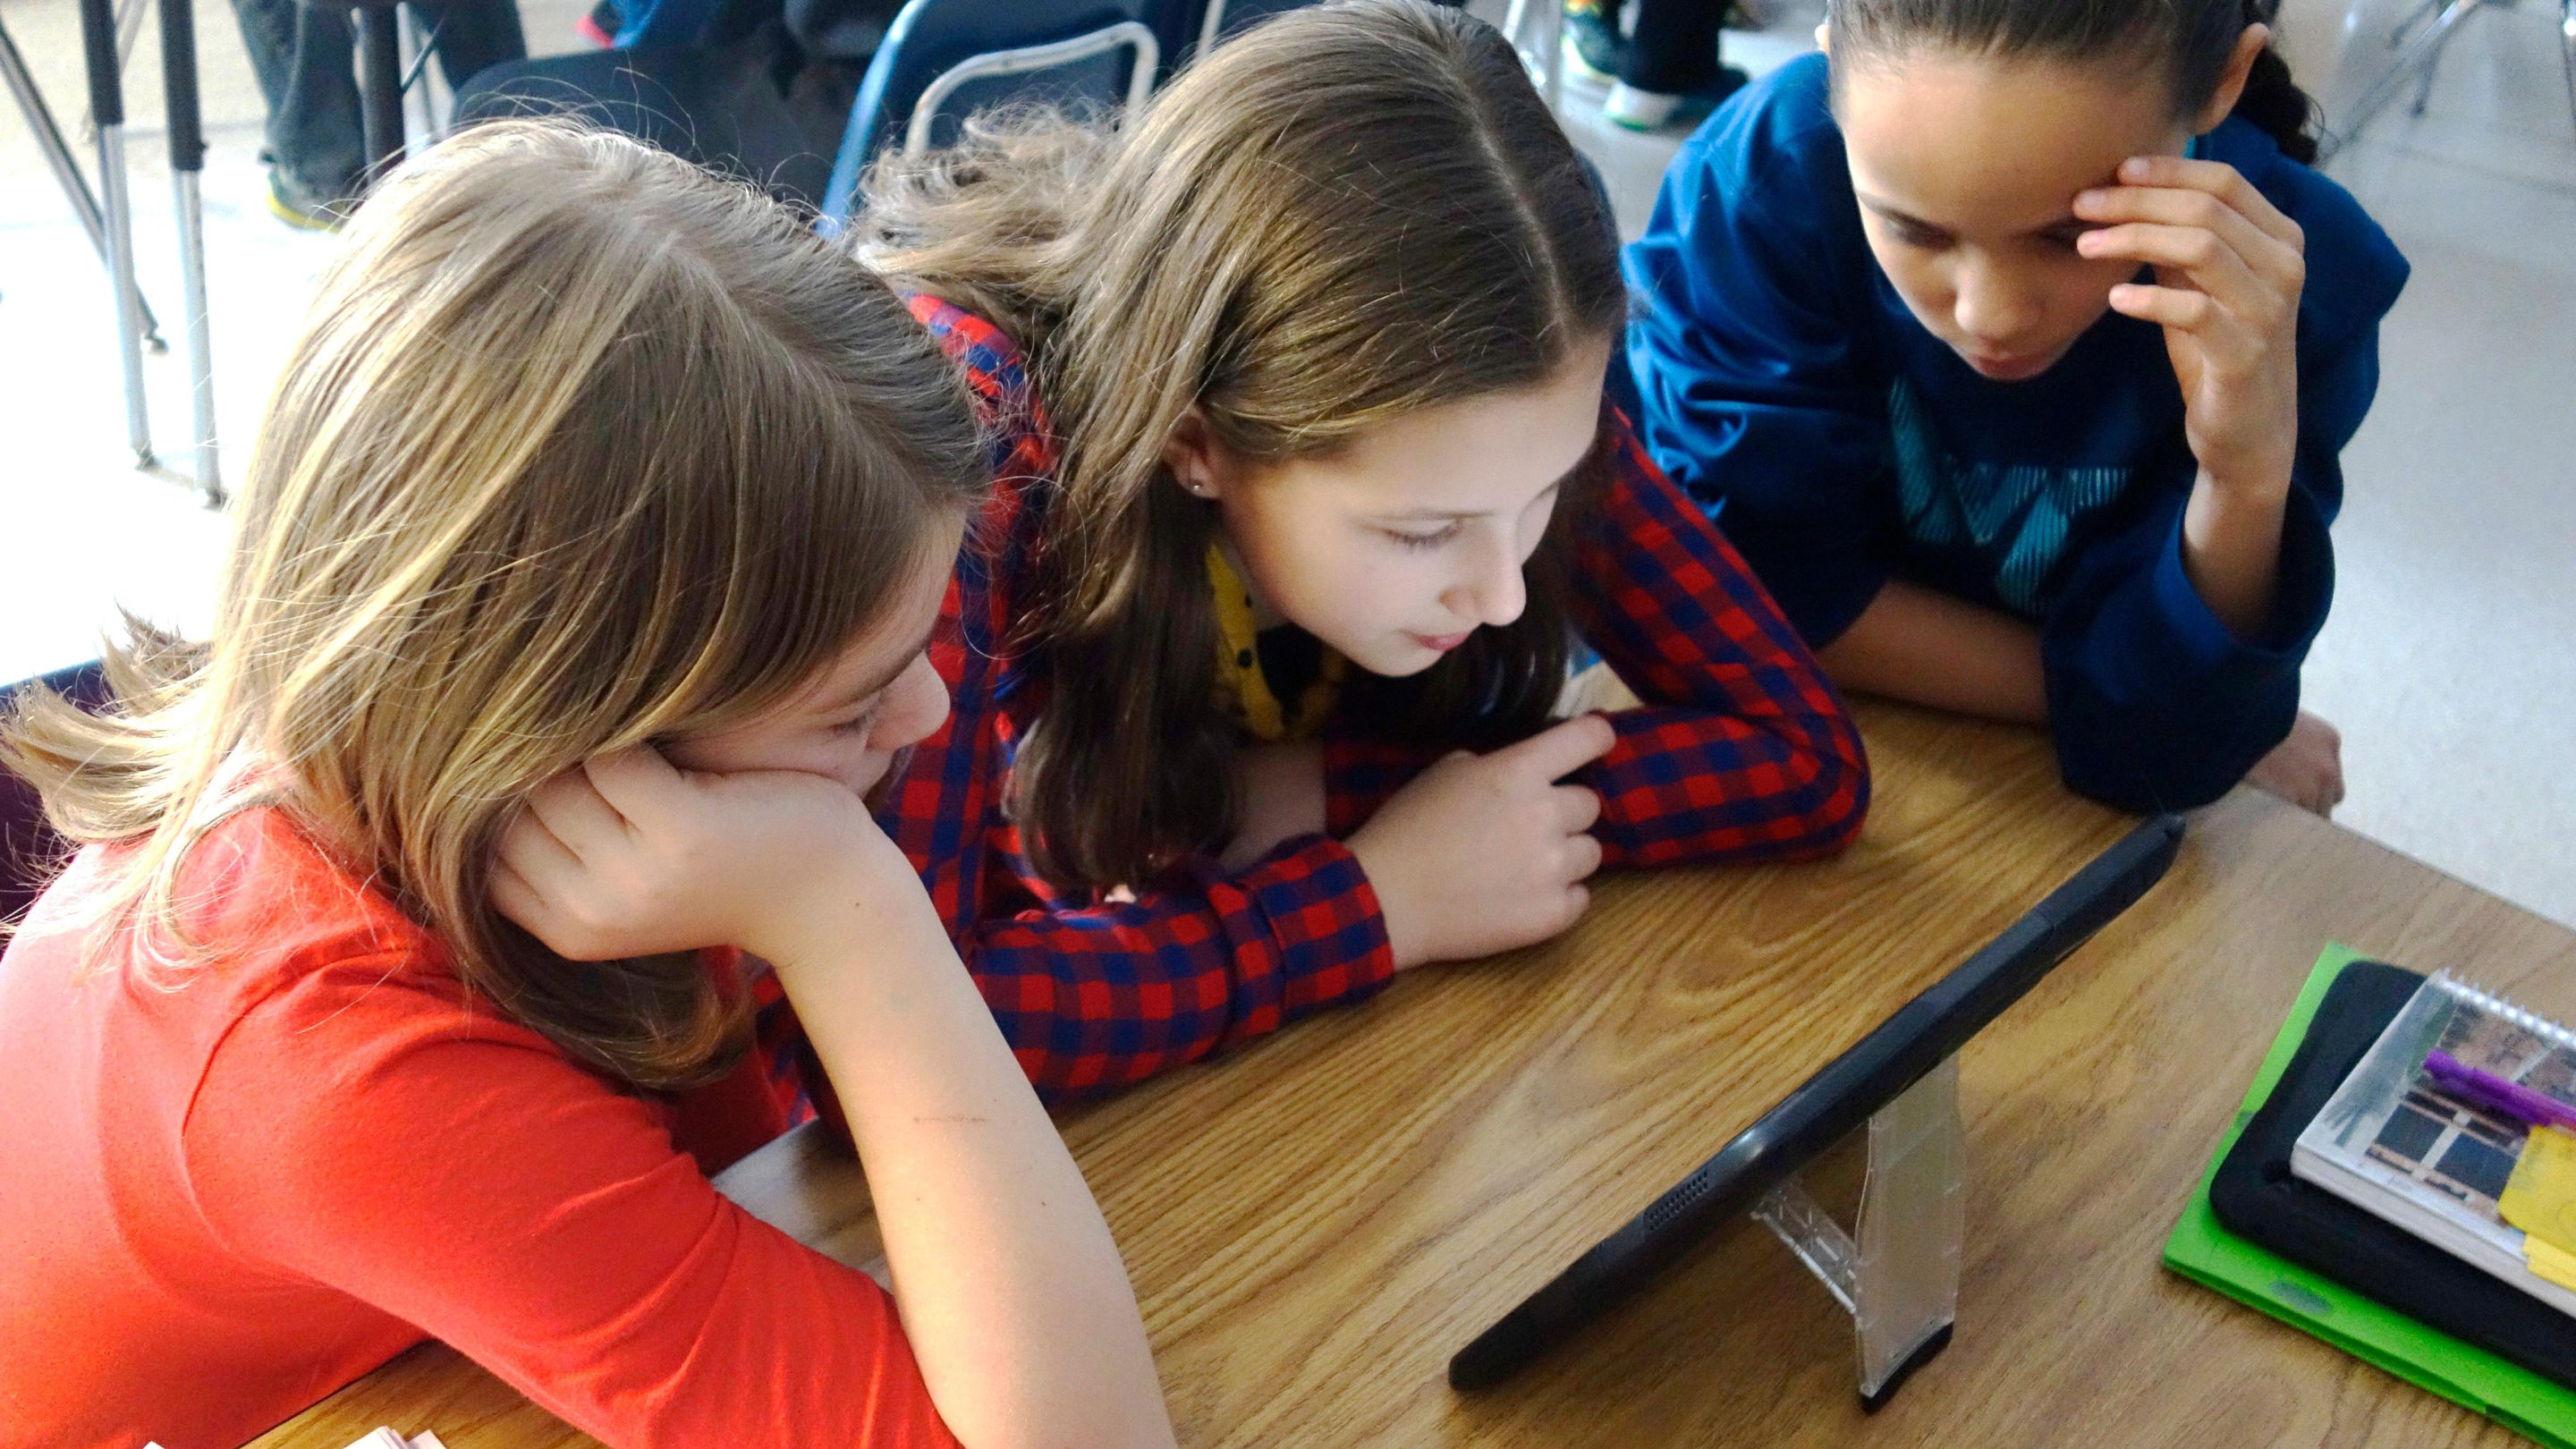 Using Digital Tools to Promote Social and Emotional Learning